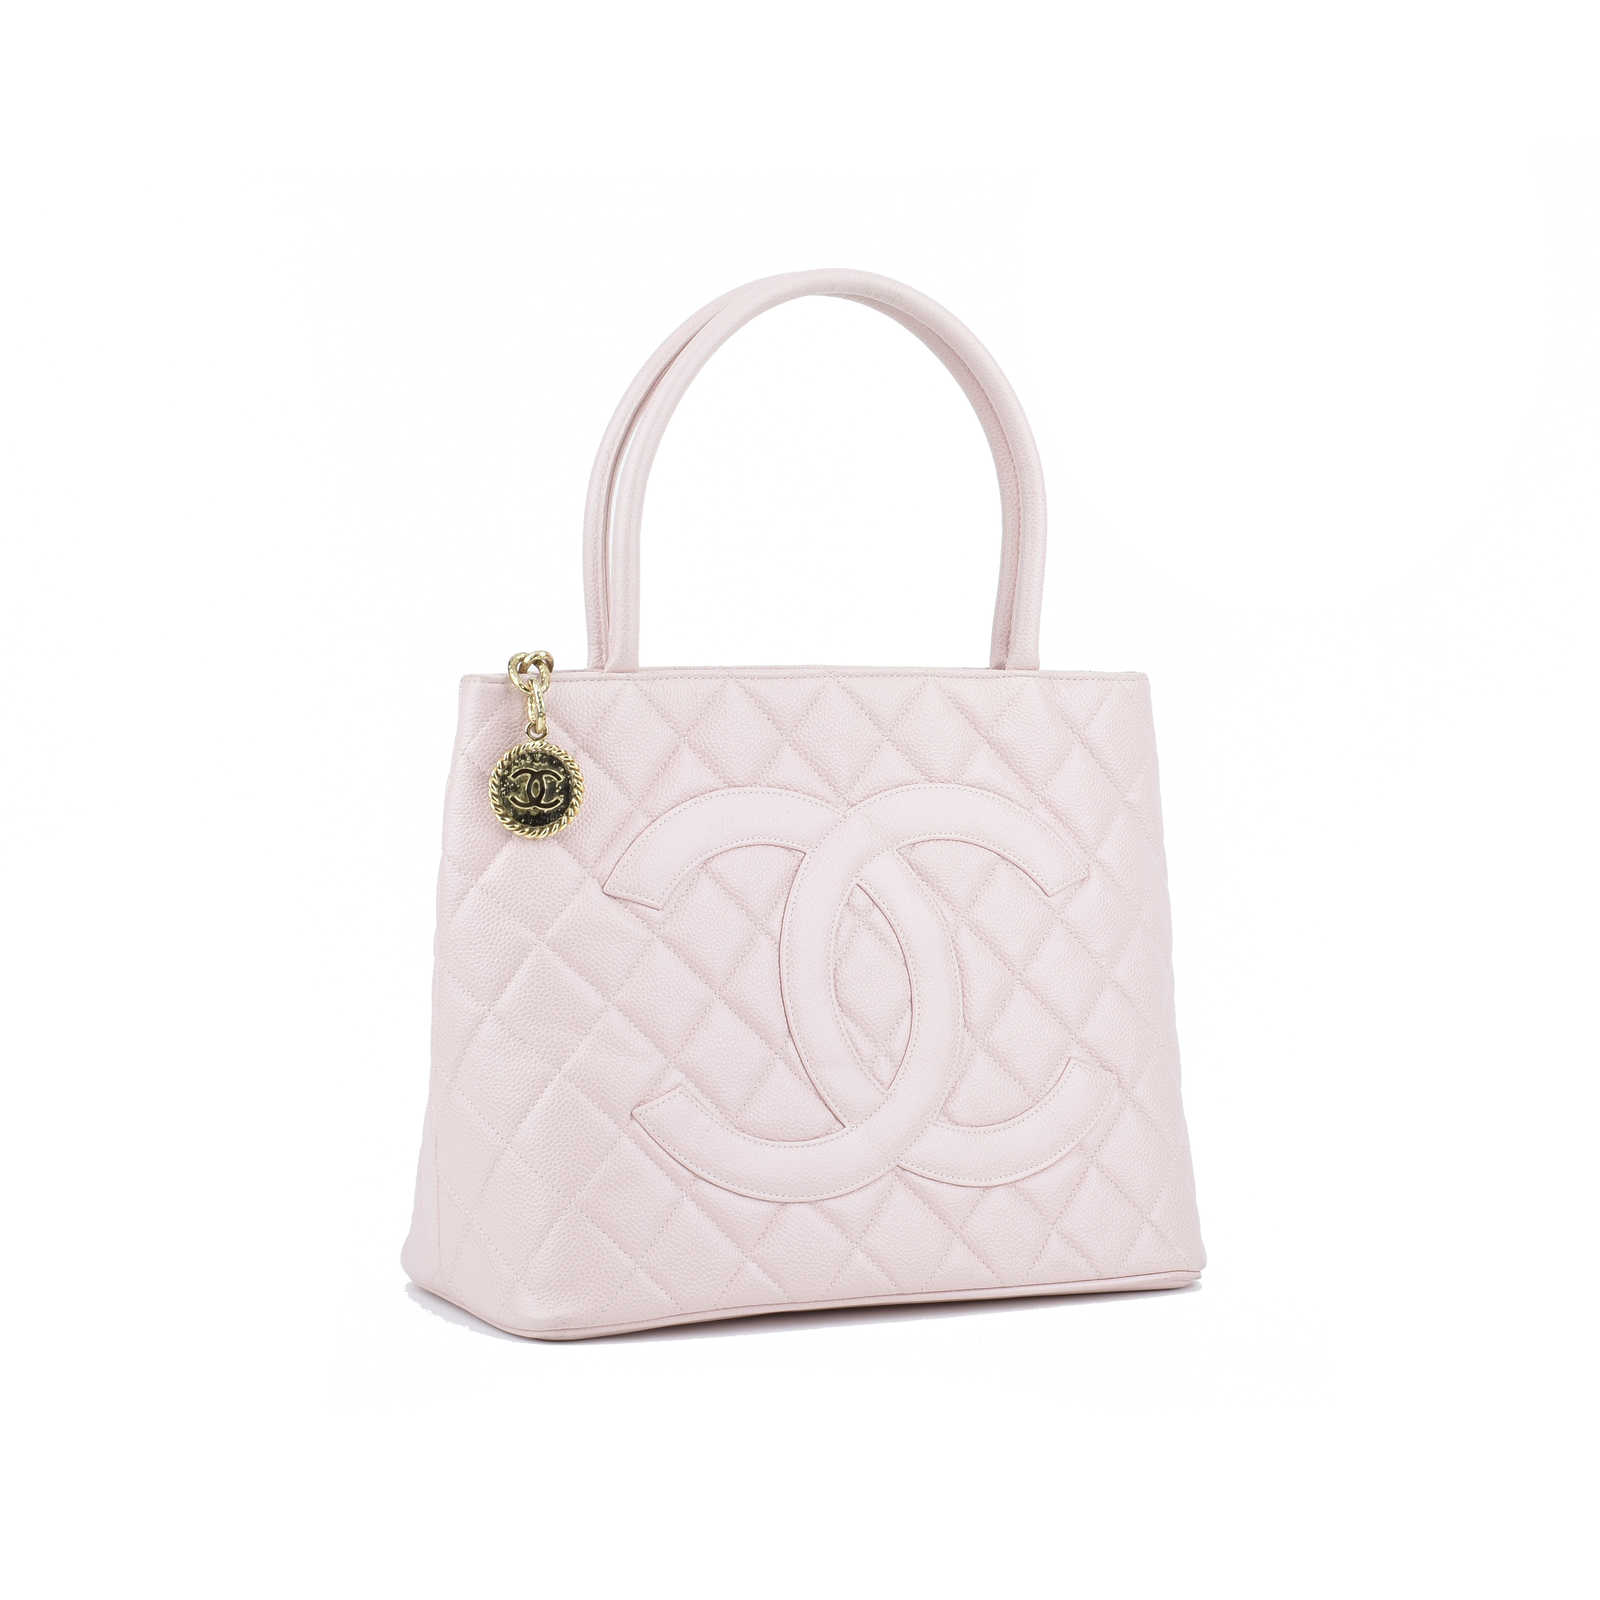 3a118374b4cd ... Authentic Second Hand Chanel Medallion Tote Bag (PSS-355-00017) -  Thumbnail ...